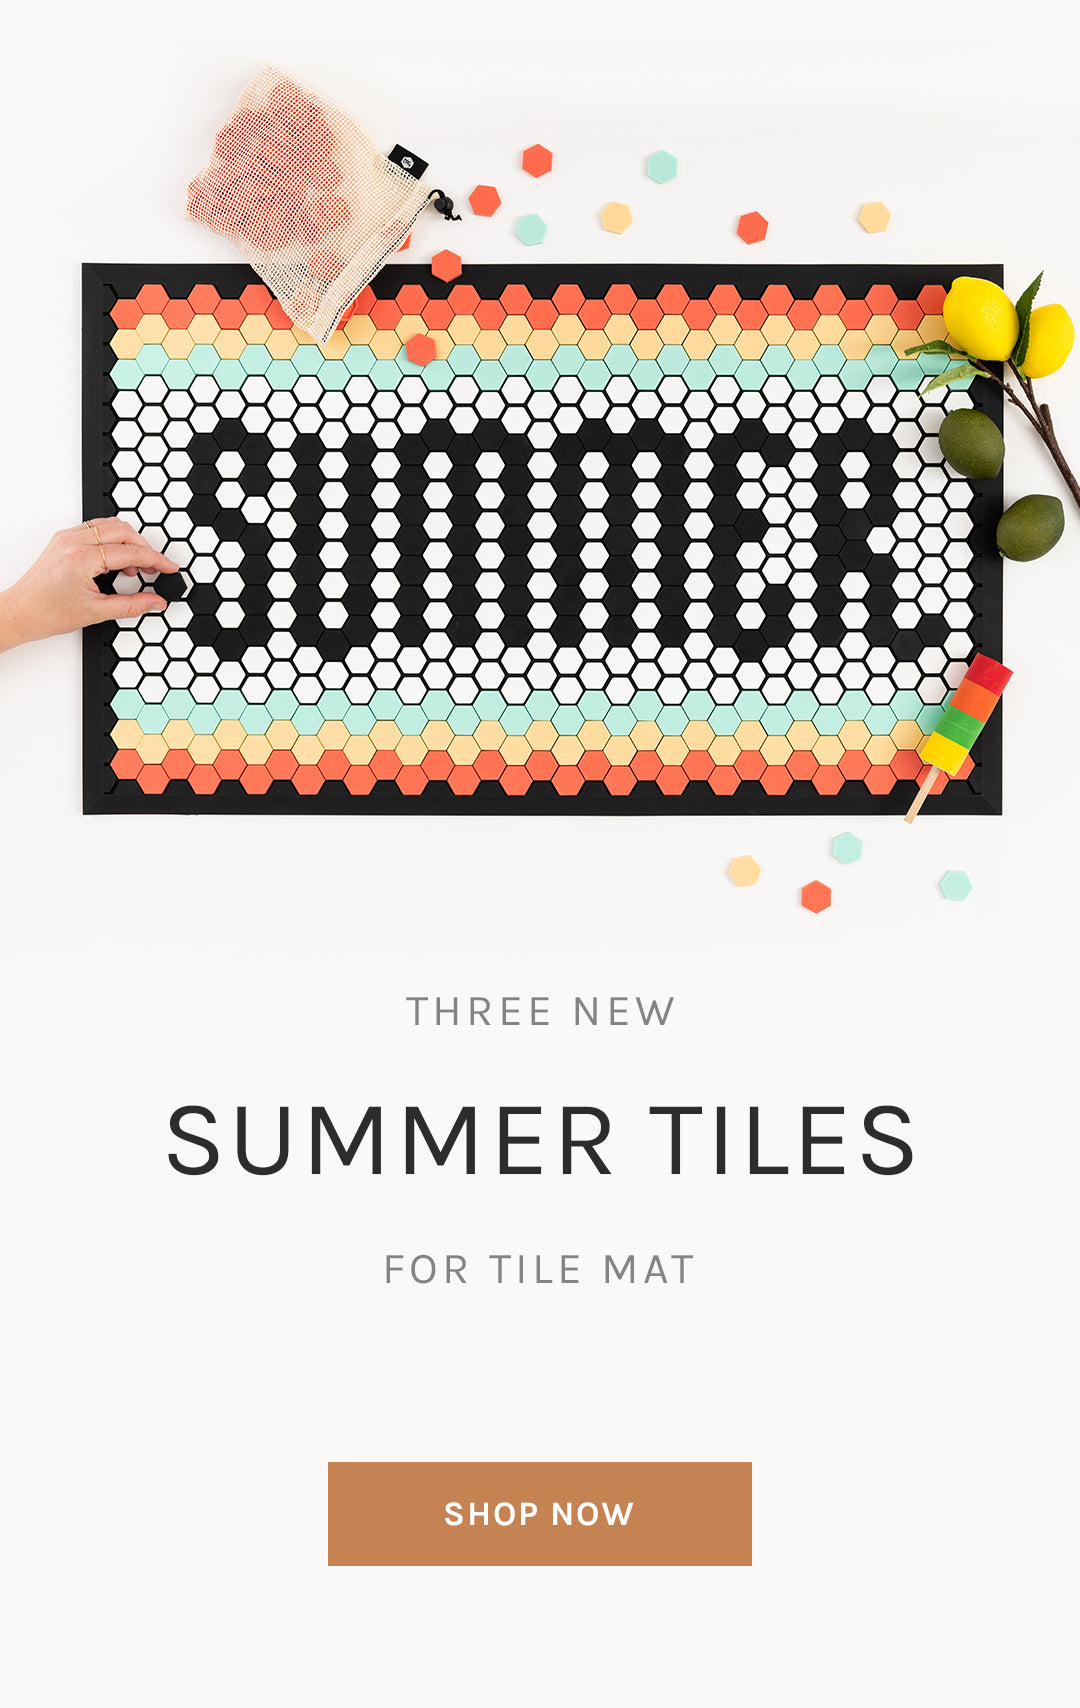 Three New Summer Tiles for Tile Mat